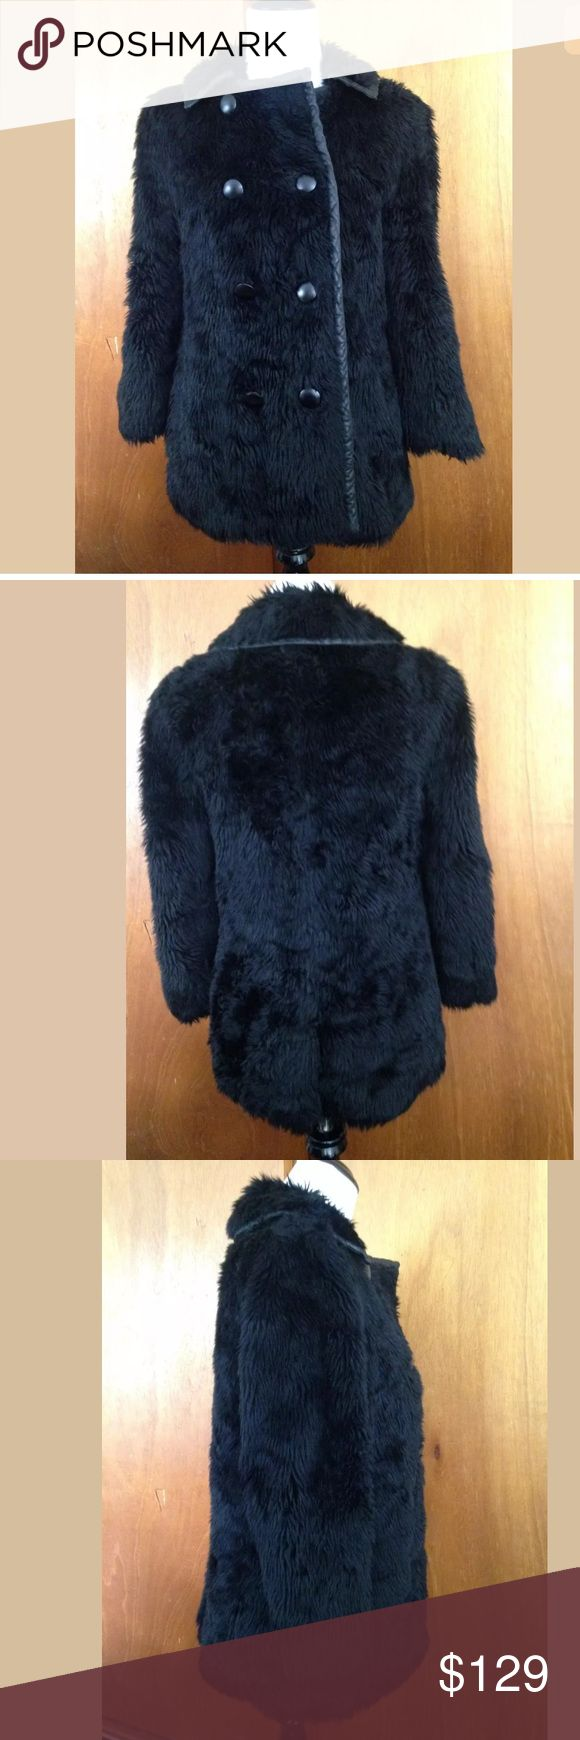 "MARC by MARC JACOBS Black Faux Fur Coat Sz S Marc by Marc Jacobs Black Faux Fur Jacket Leather Trim SZ S  Size S Made in Finland Faux fur/leather trim Double breasted Laid flat this top measures 15"" shoulders, 34"" bust, 27"" in length, and 20"" sleeve length Marc by Marc Jacobs Jackets & Coats"